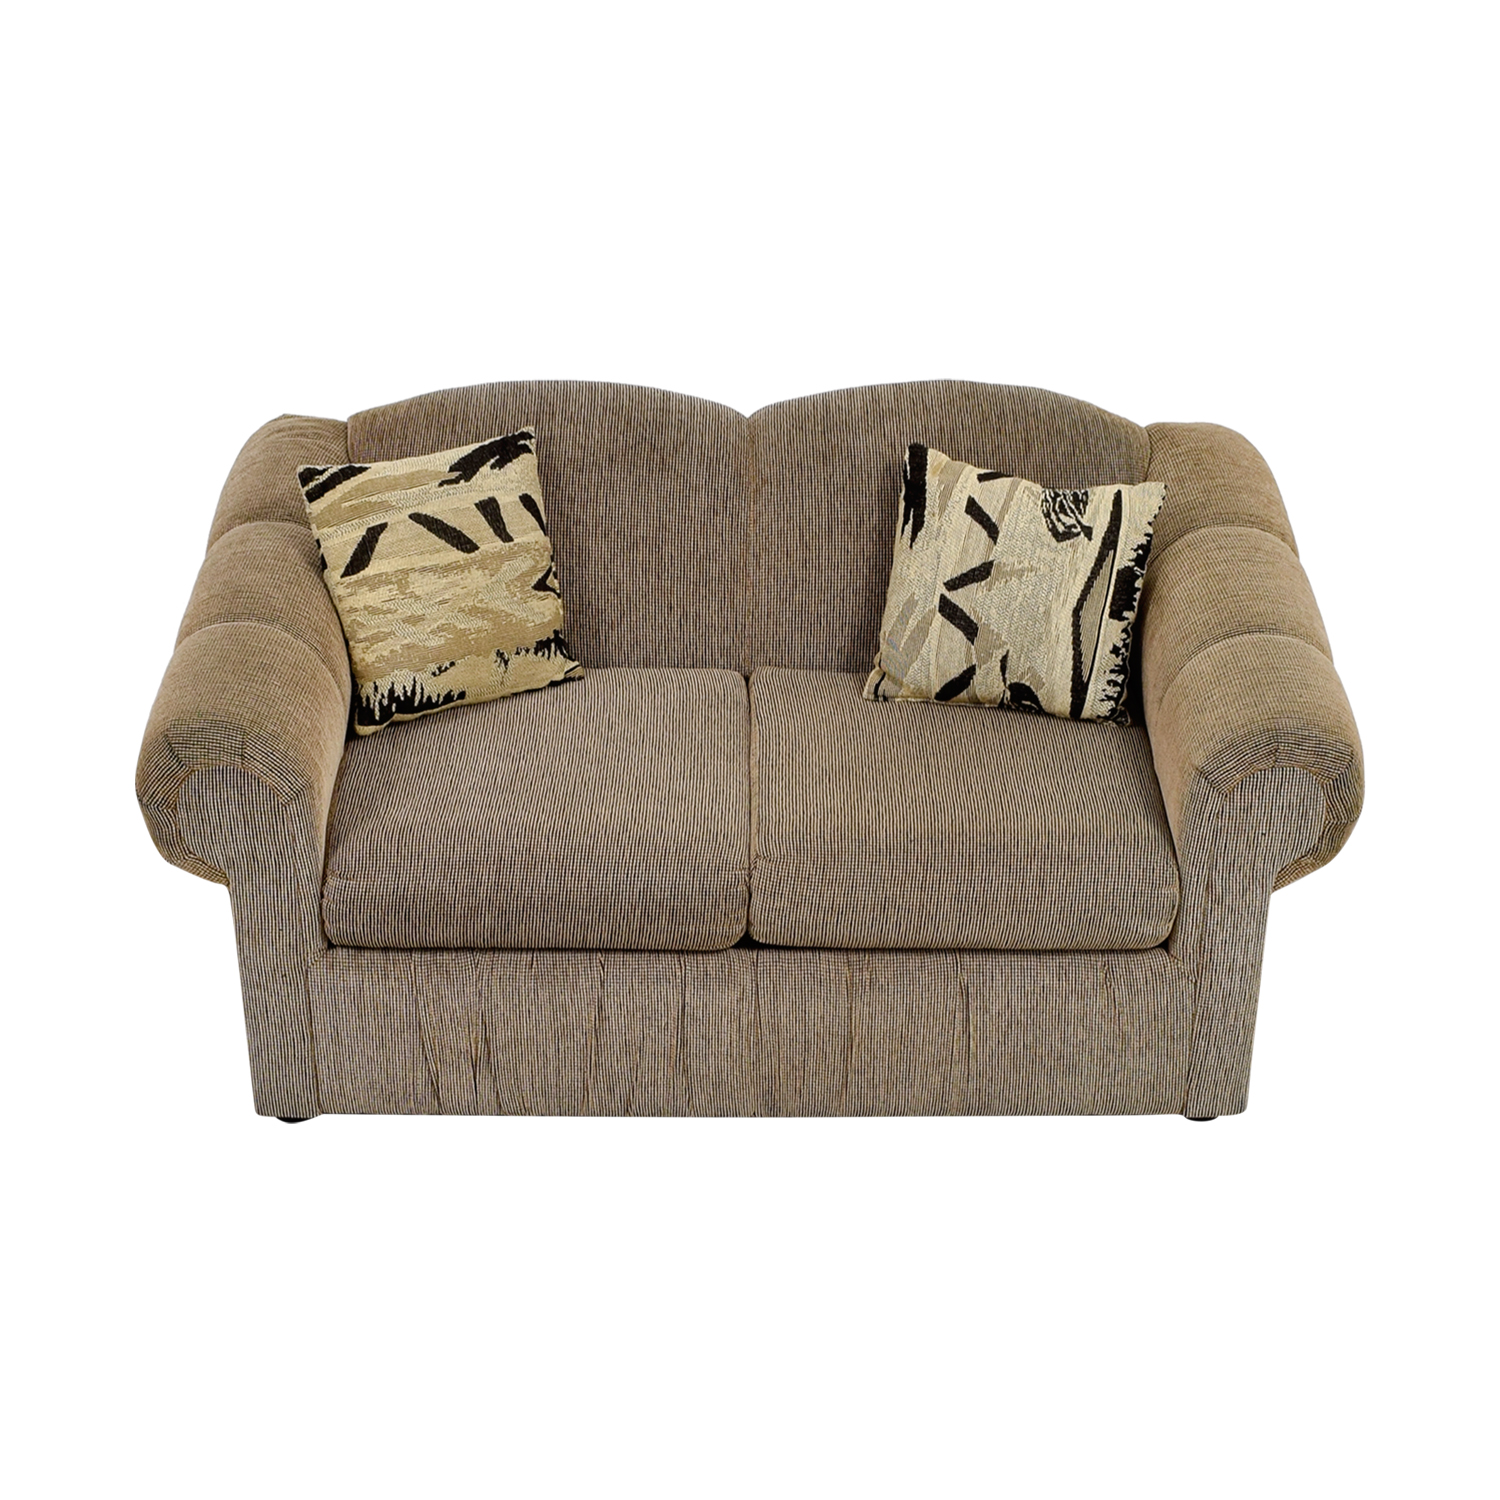 Tan Two-Cushion Love Seat discount